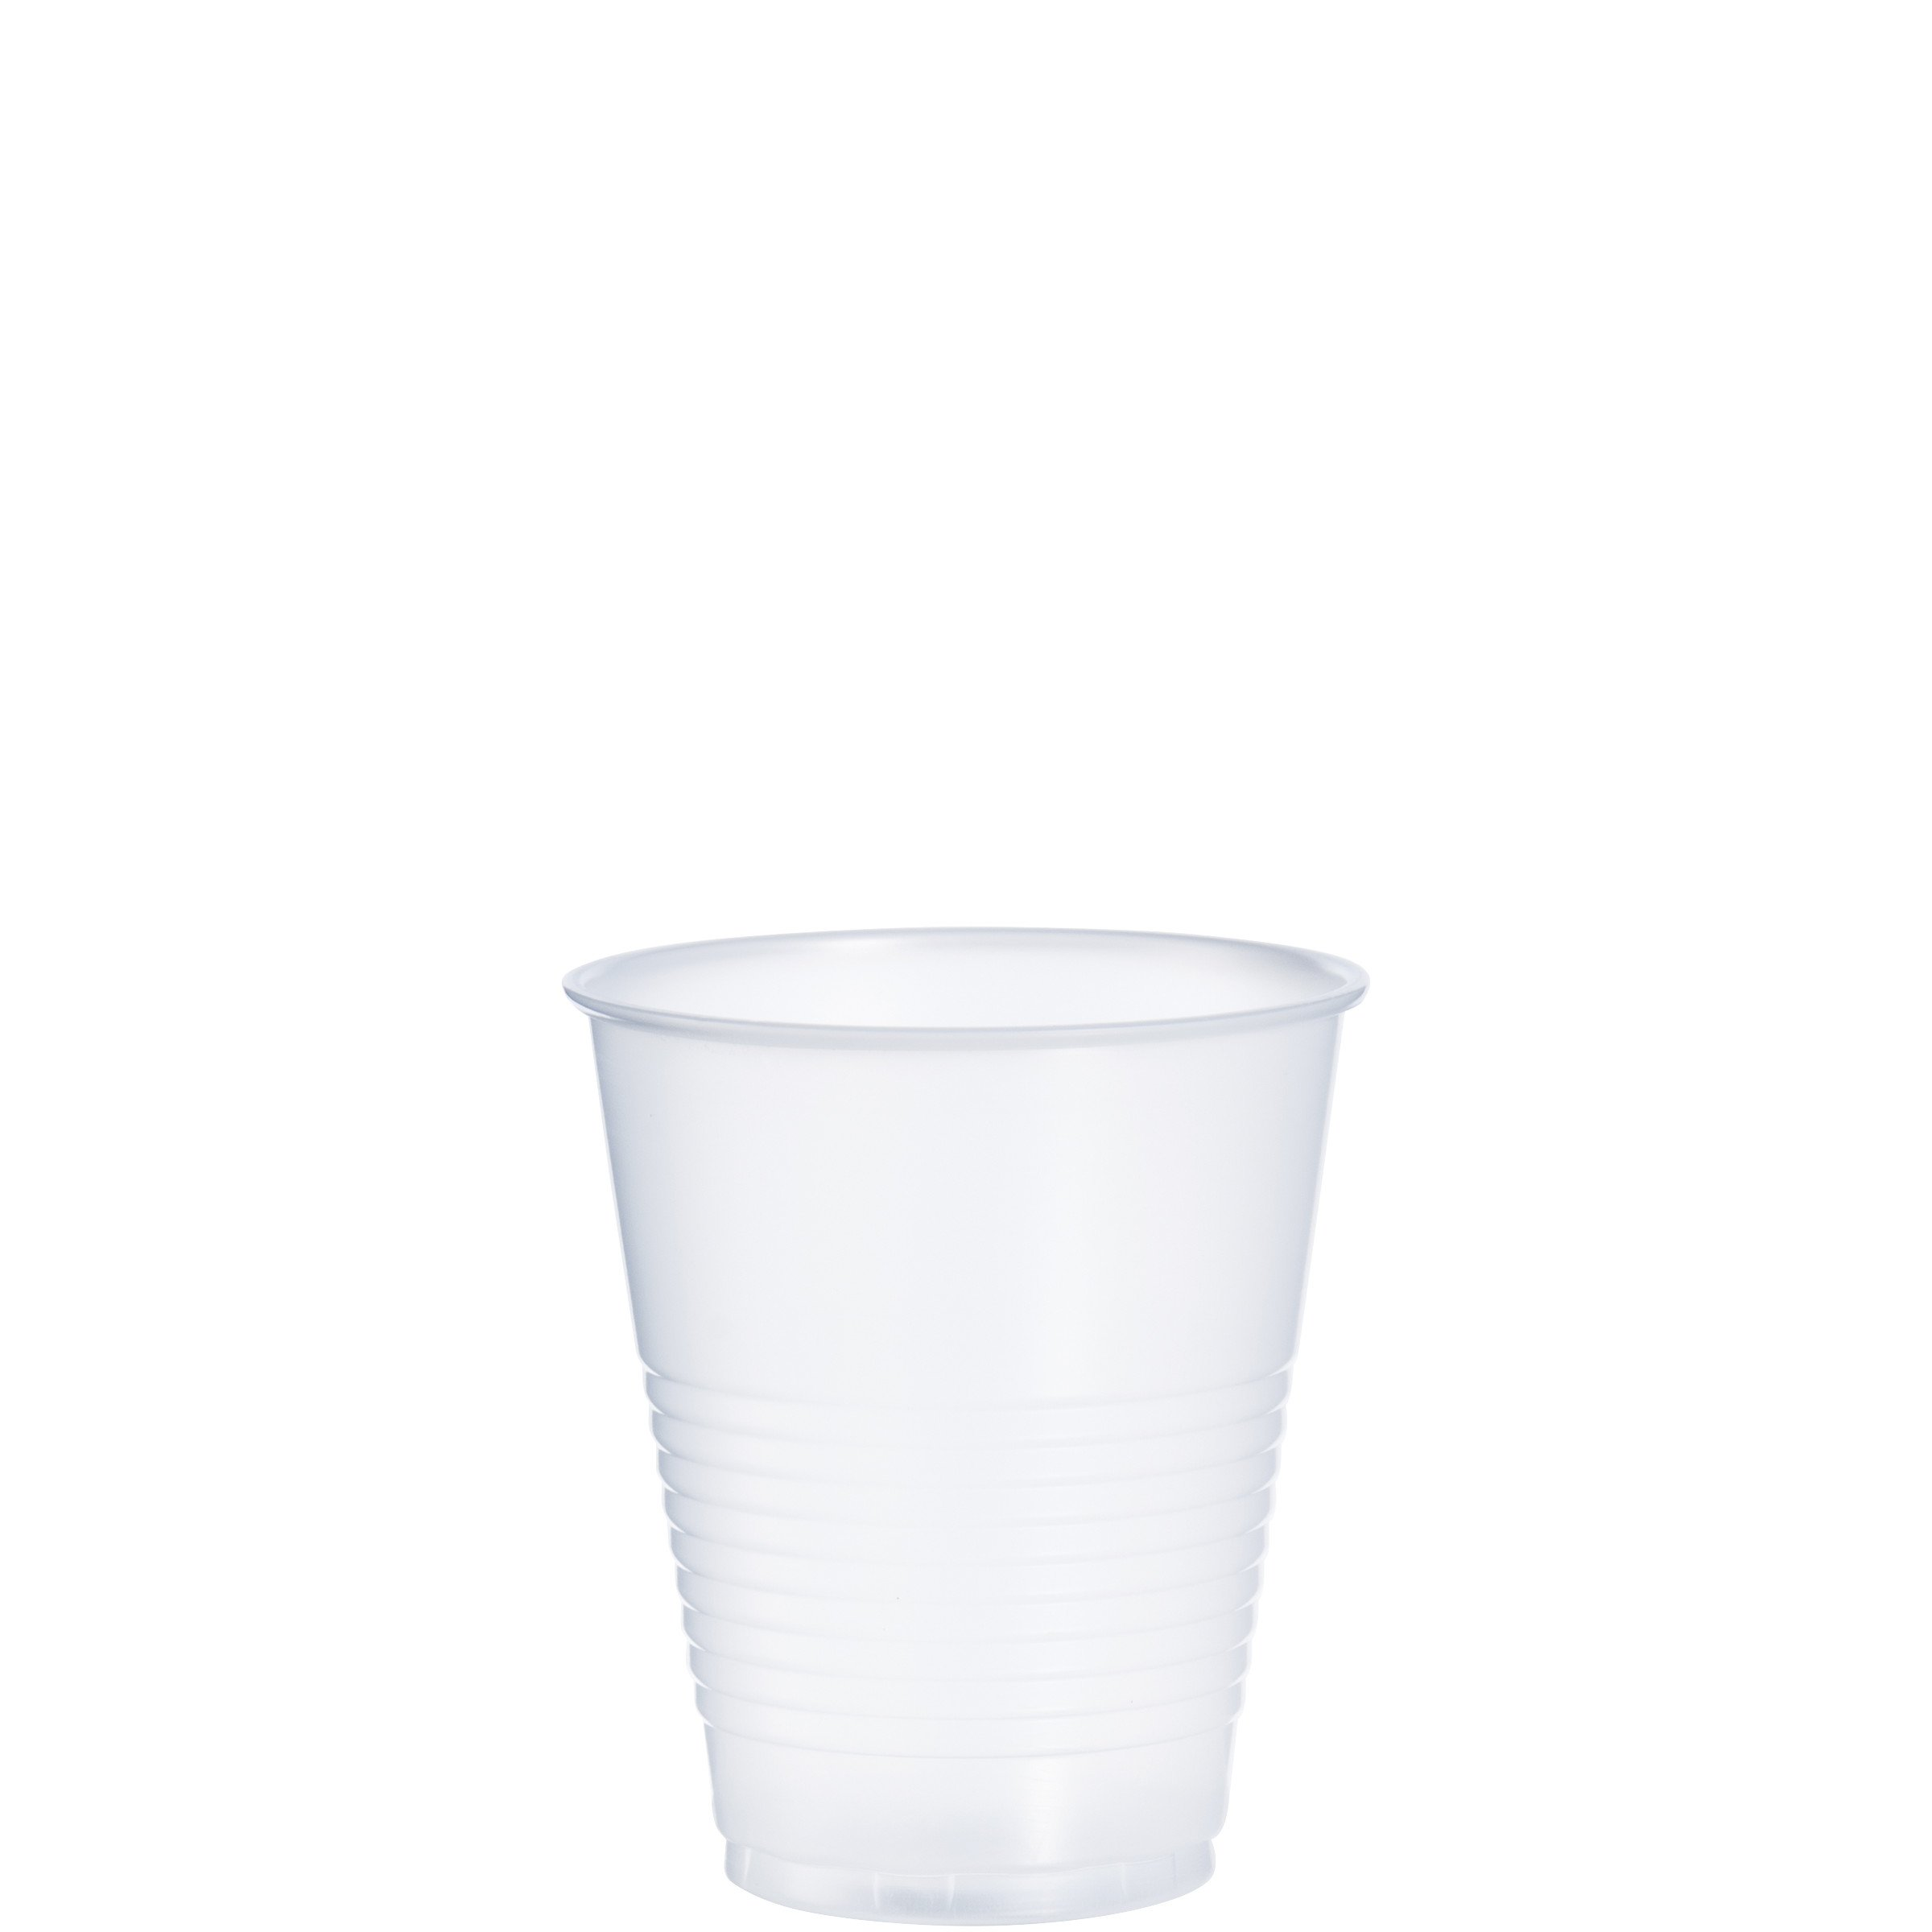 Dart Container 12oz Cold Plastic Cups, Clear, Pack of 1000 Y12S (12SNDart) by DART